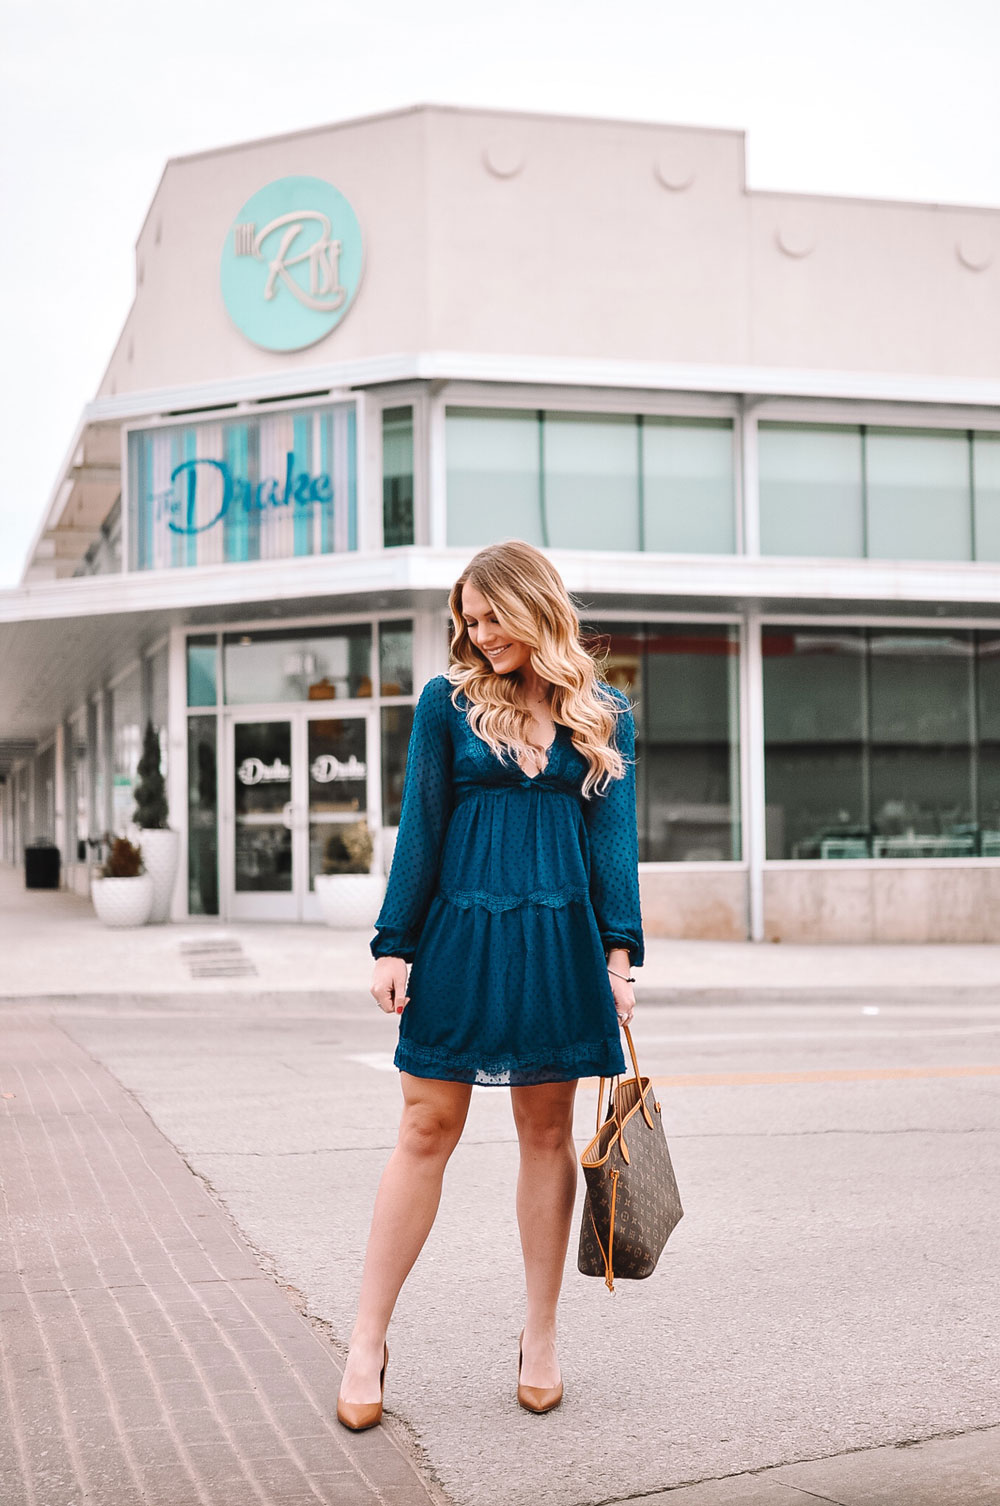 Date Night outfit at The Drake in OKC's Uptown 23rd District